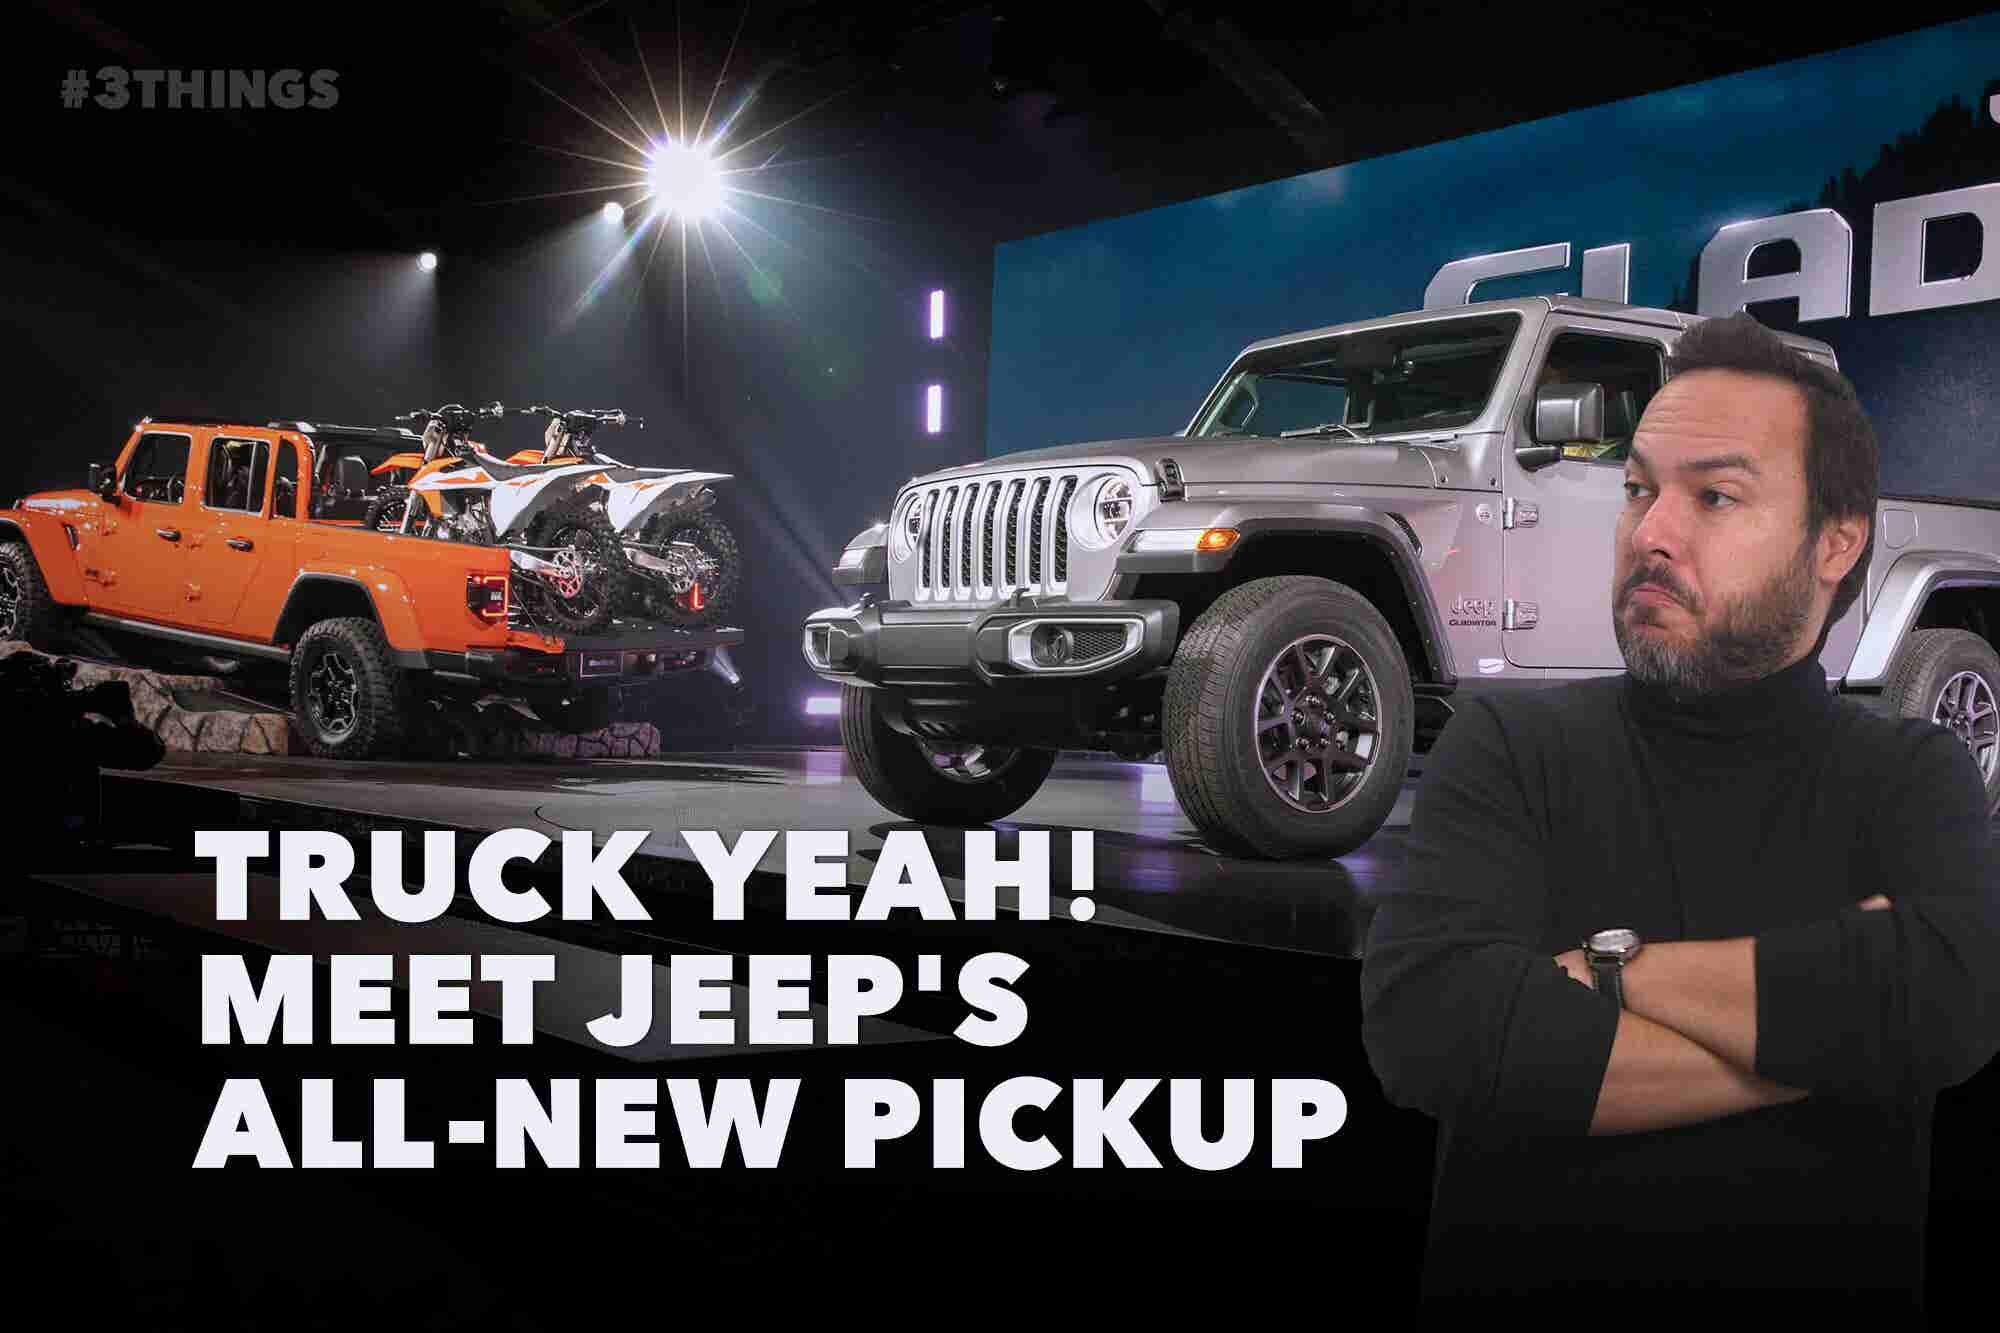 Jeep Drops a Pickup, Microsoft Tops Apple, and Alexa Is All About That...